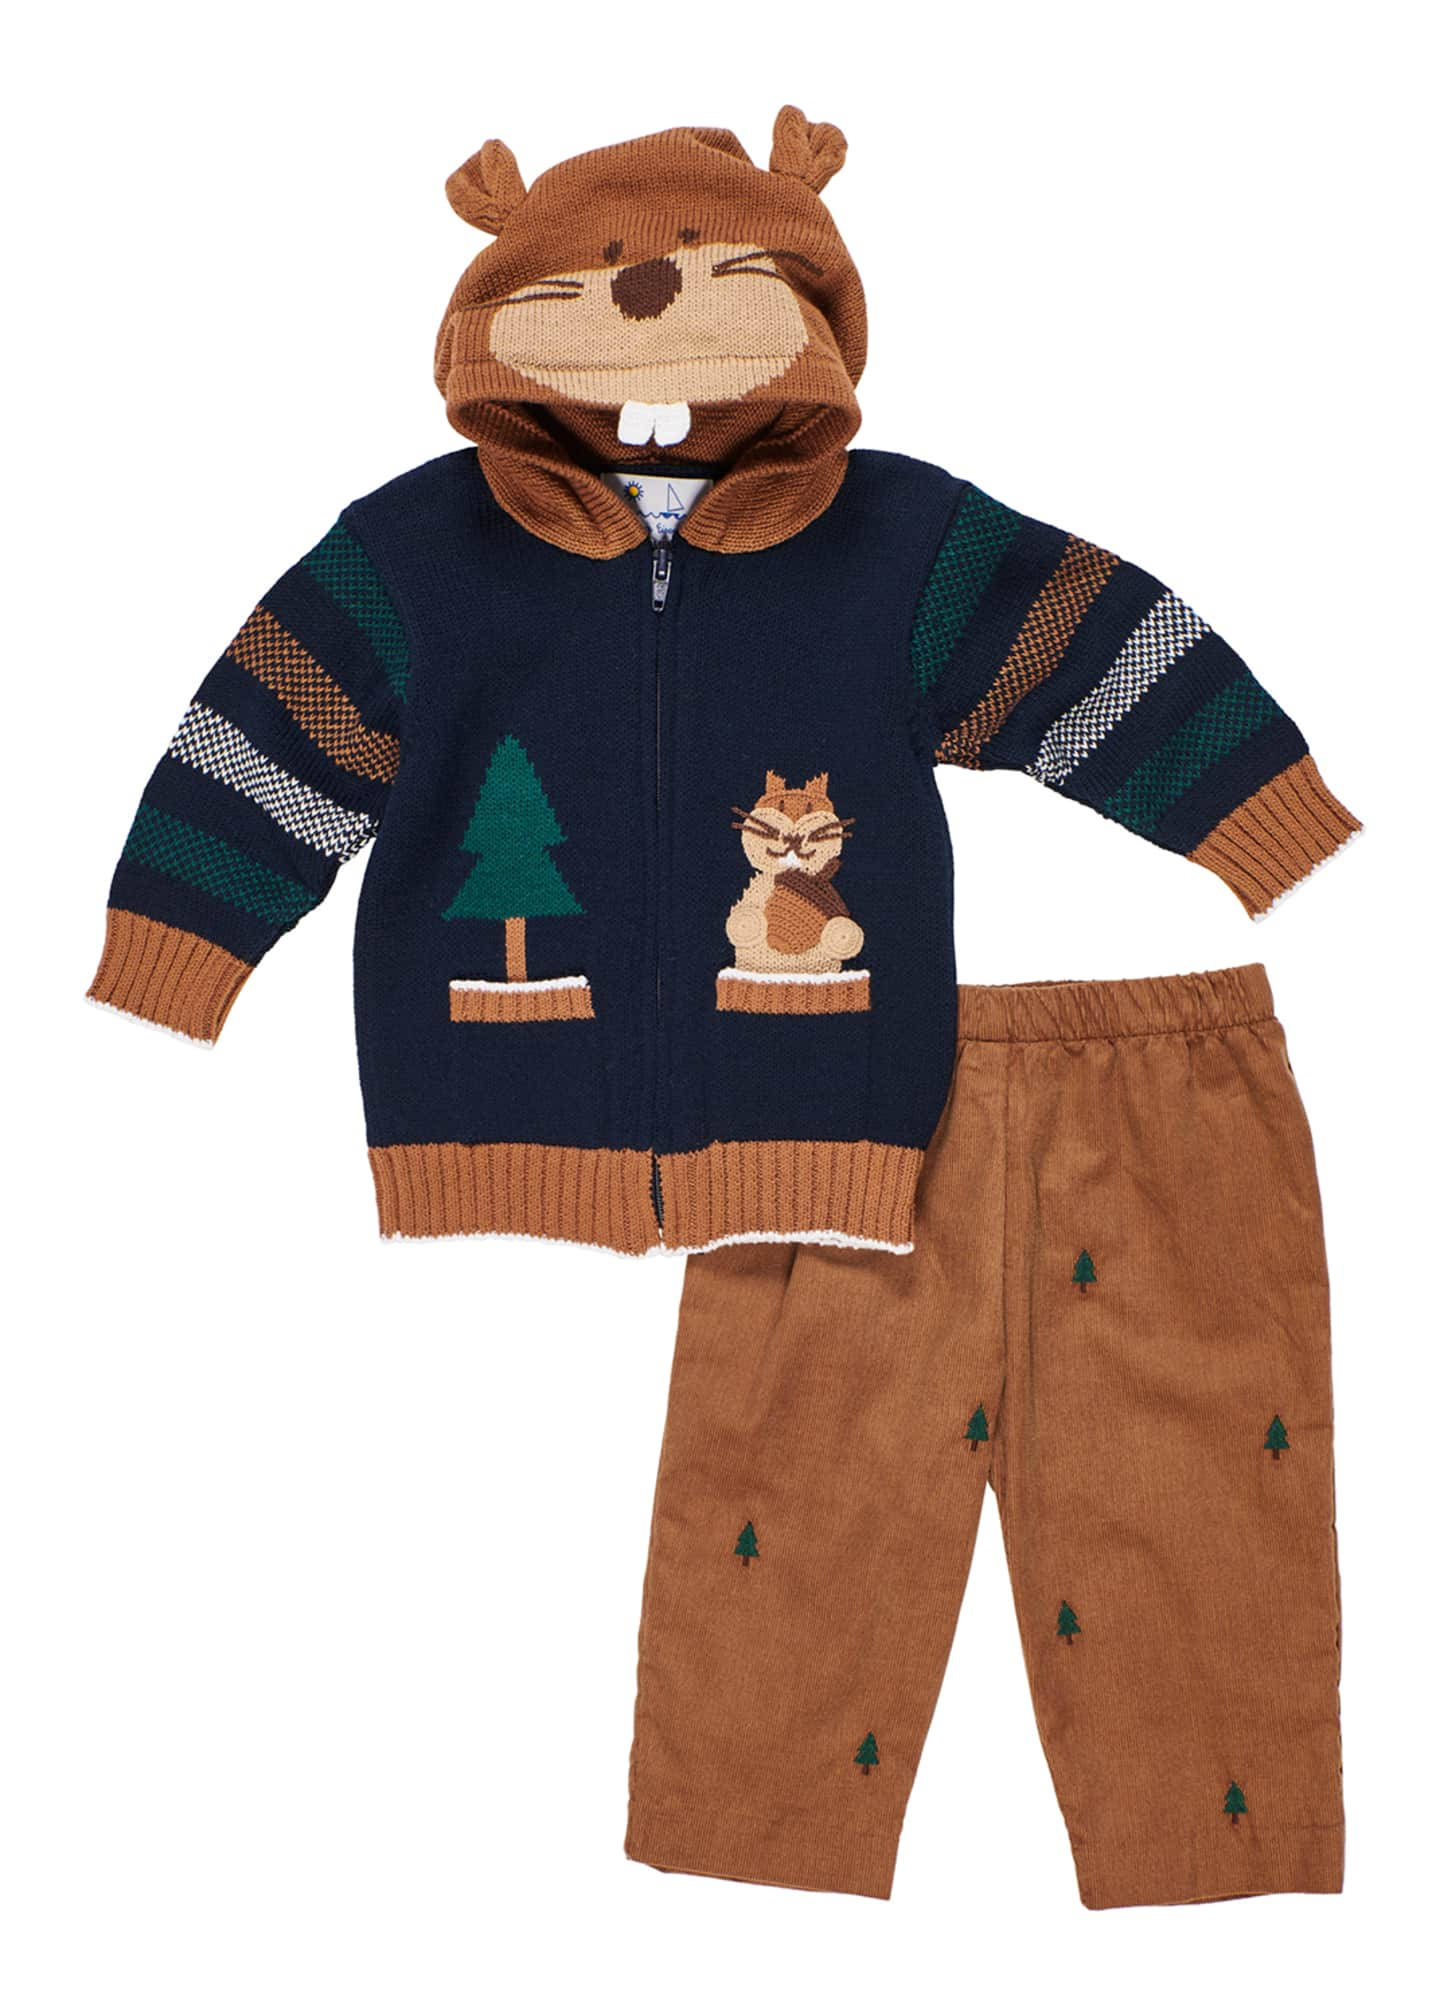 Florence Eiseman Hooded Zip-Up Squirrel Sweater w/ Tree